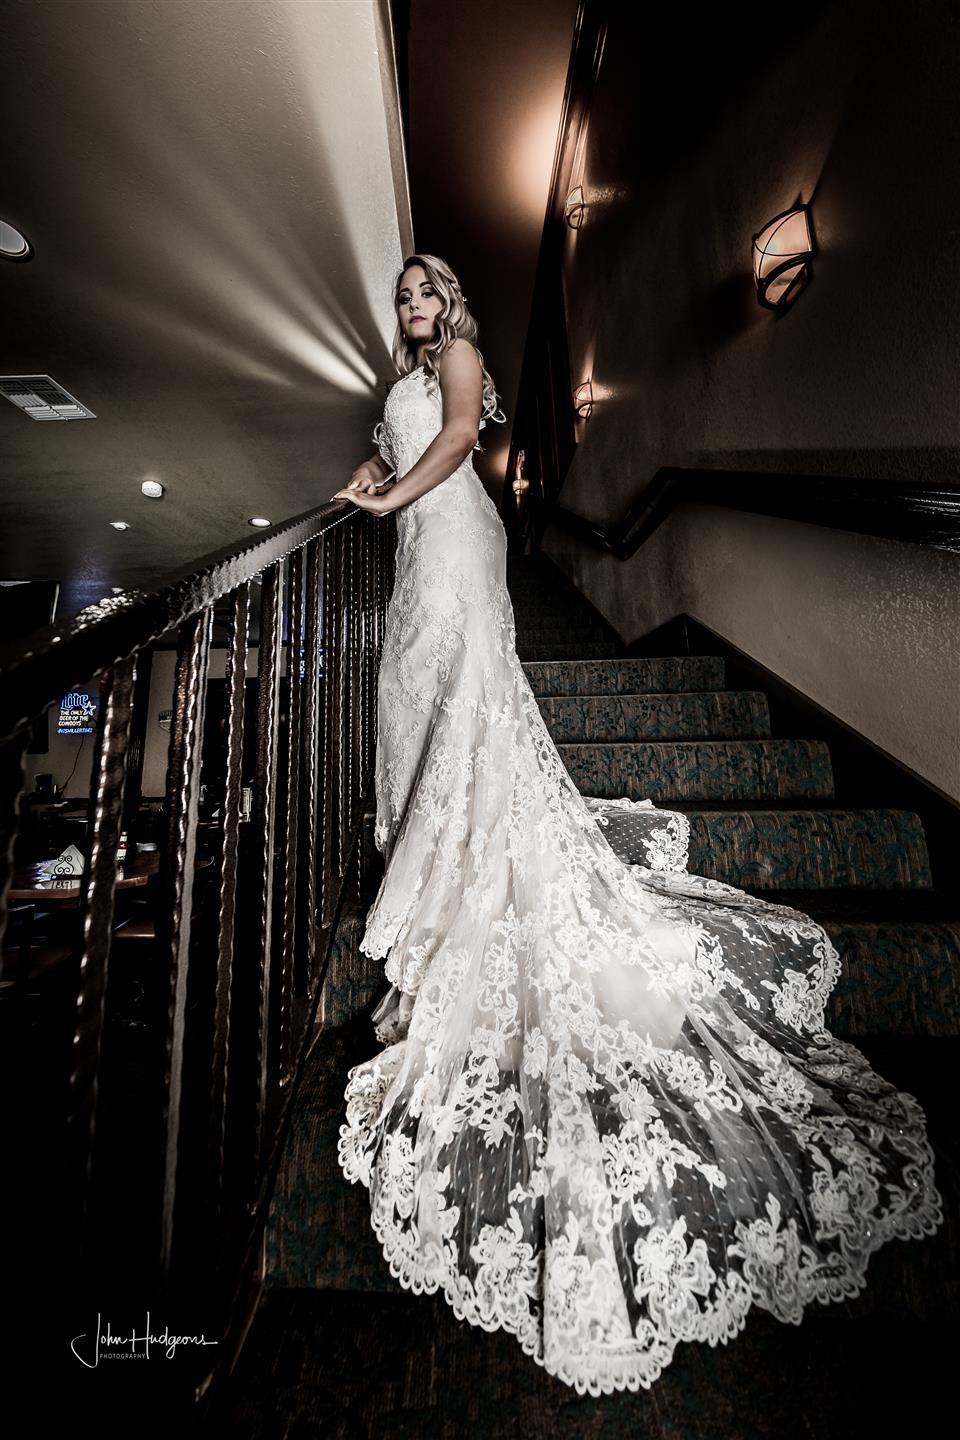 Bride on staircase with wedding gown